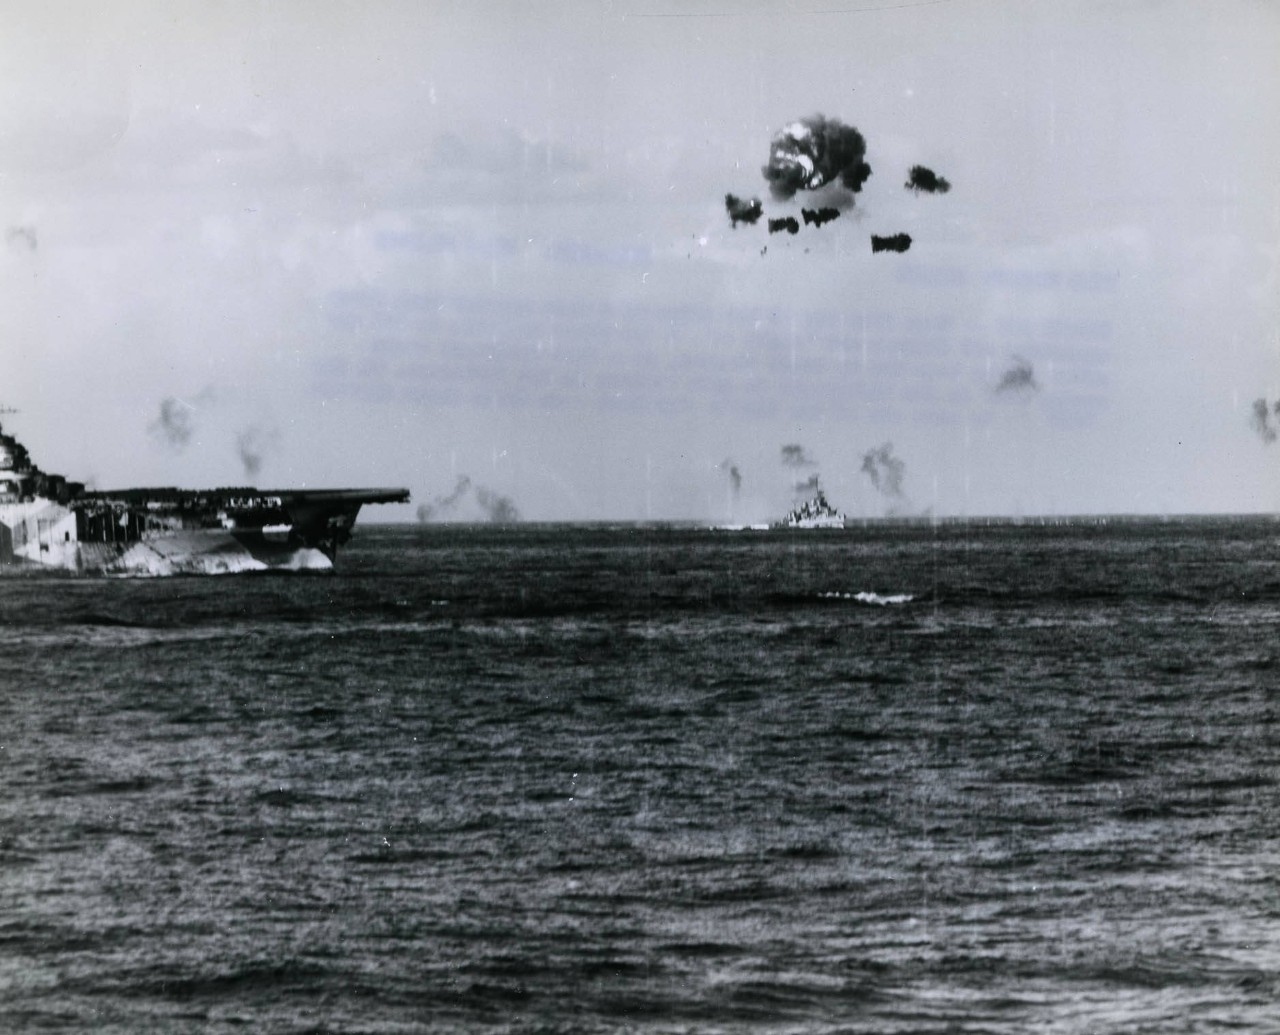 antiaircraft fire from ships of TF 38